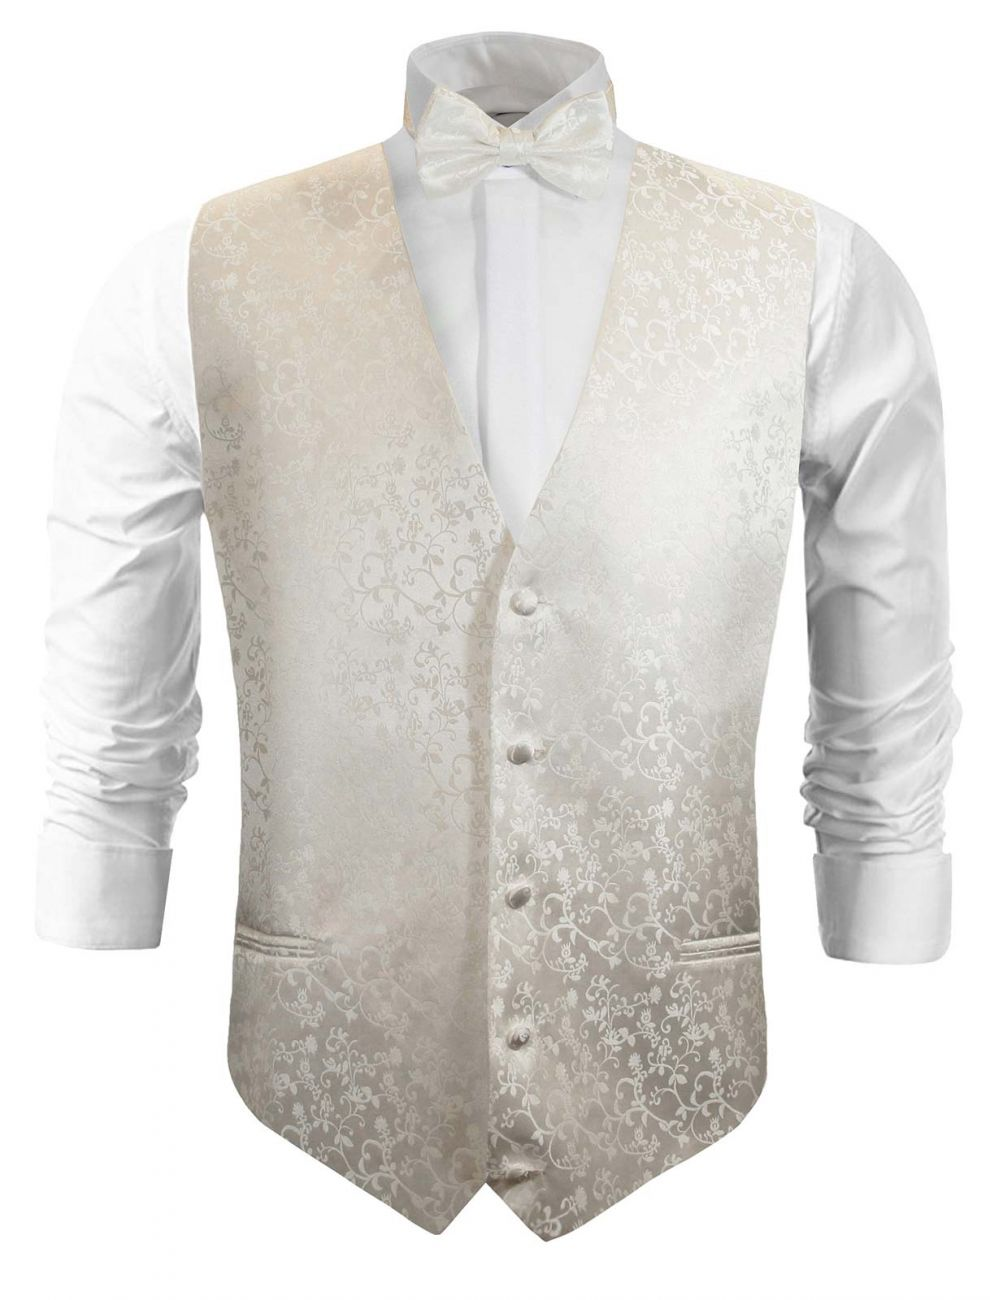 Ivory wedding vest floral waistcoat with bow tie